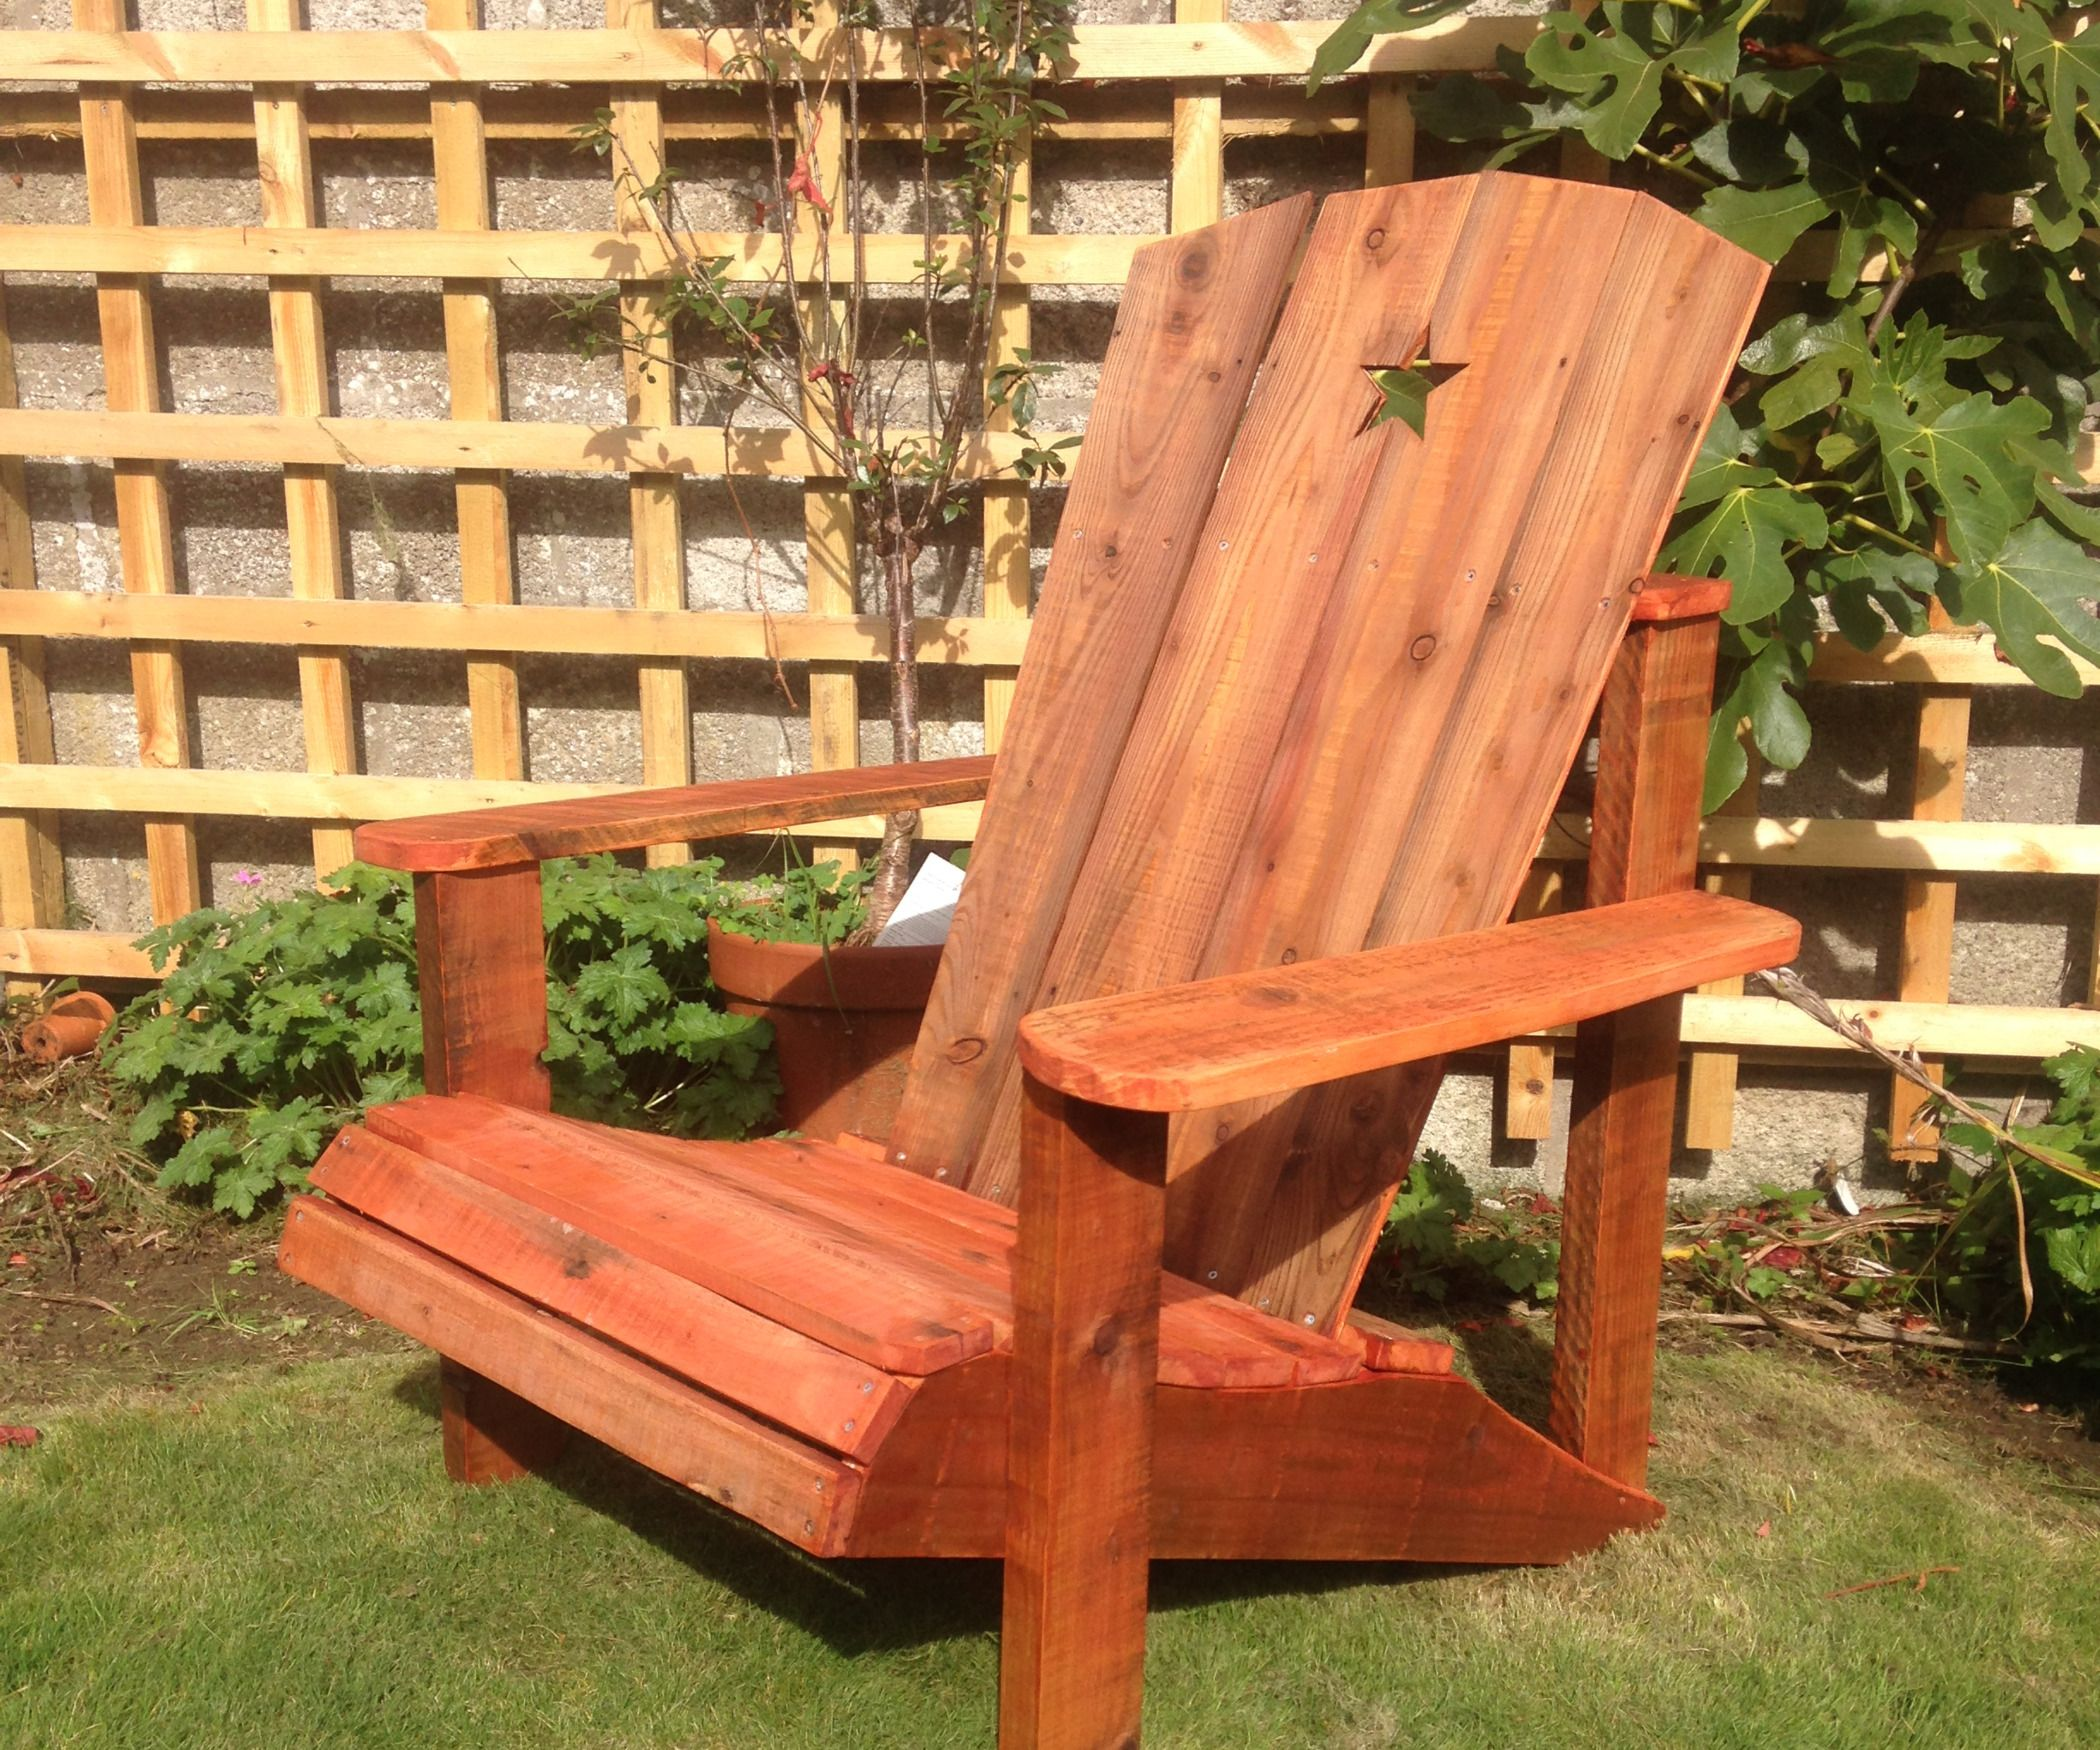 Build Your Own Adirondack Chair Plans Adirondack chair